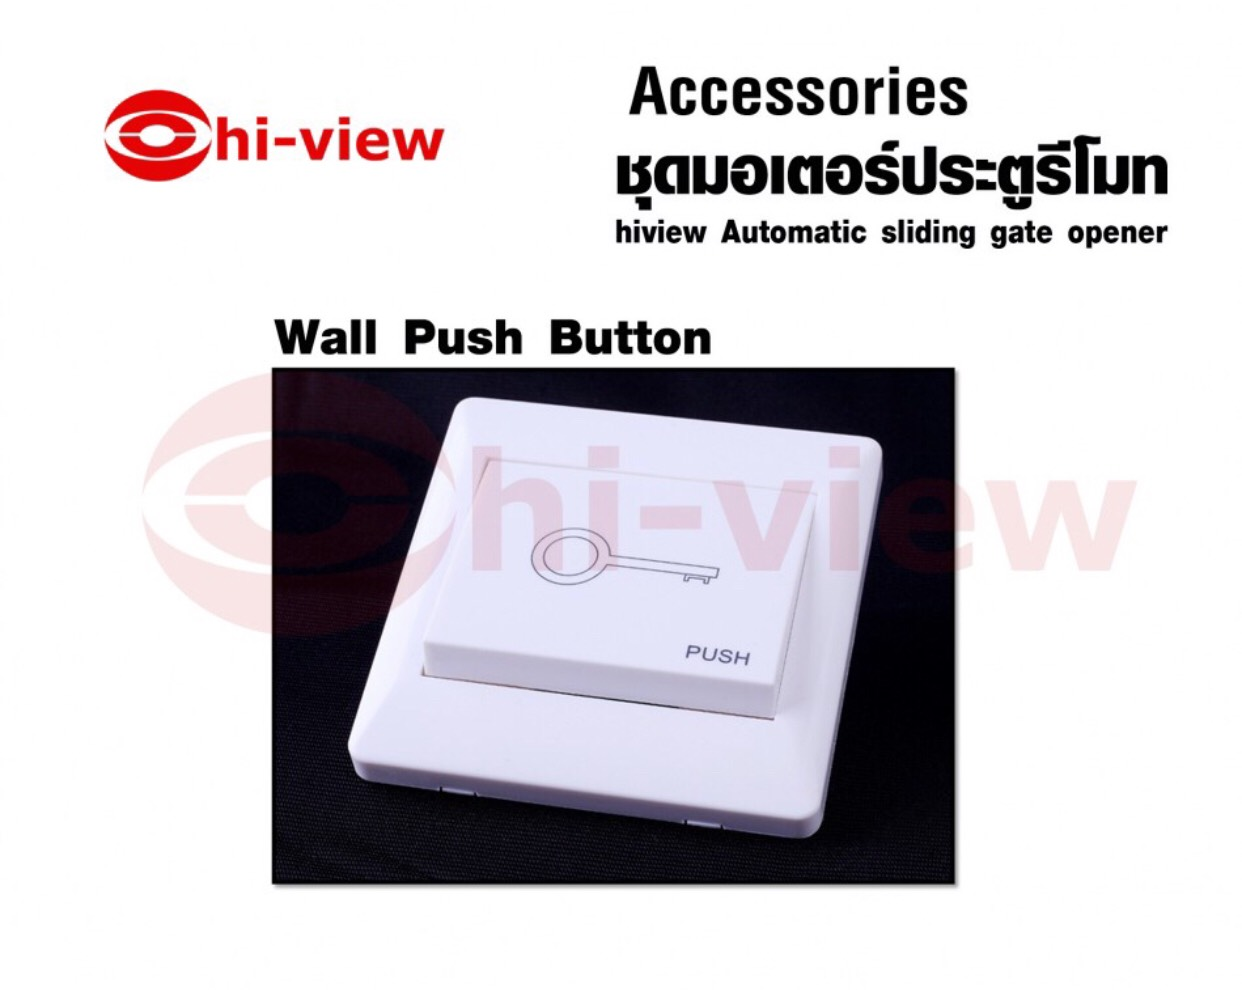 Wall Push Button